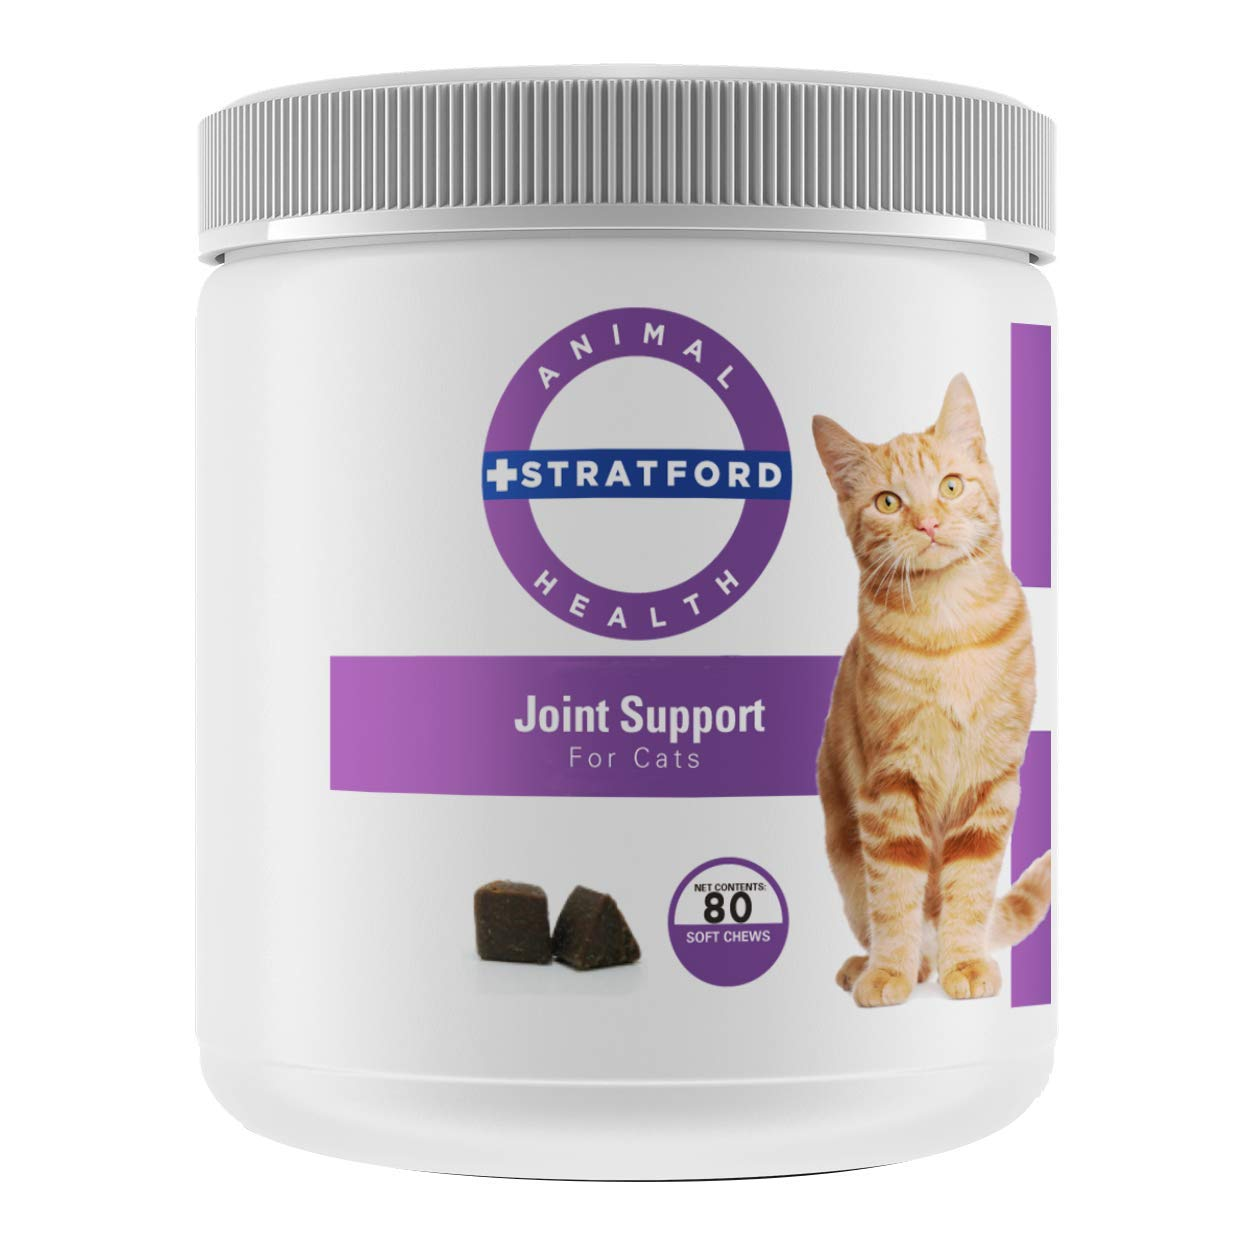 Stratford Pharmaceuticals Joint Support for Cats (80 Soft Chews) by Stratford Pharmaceuticals